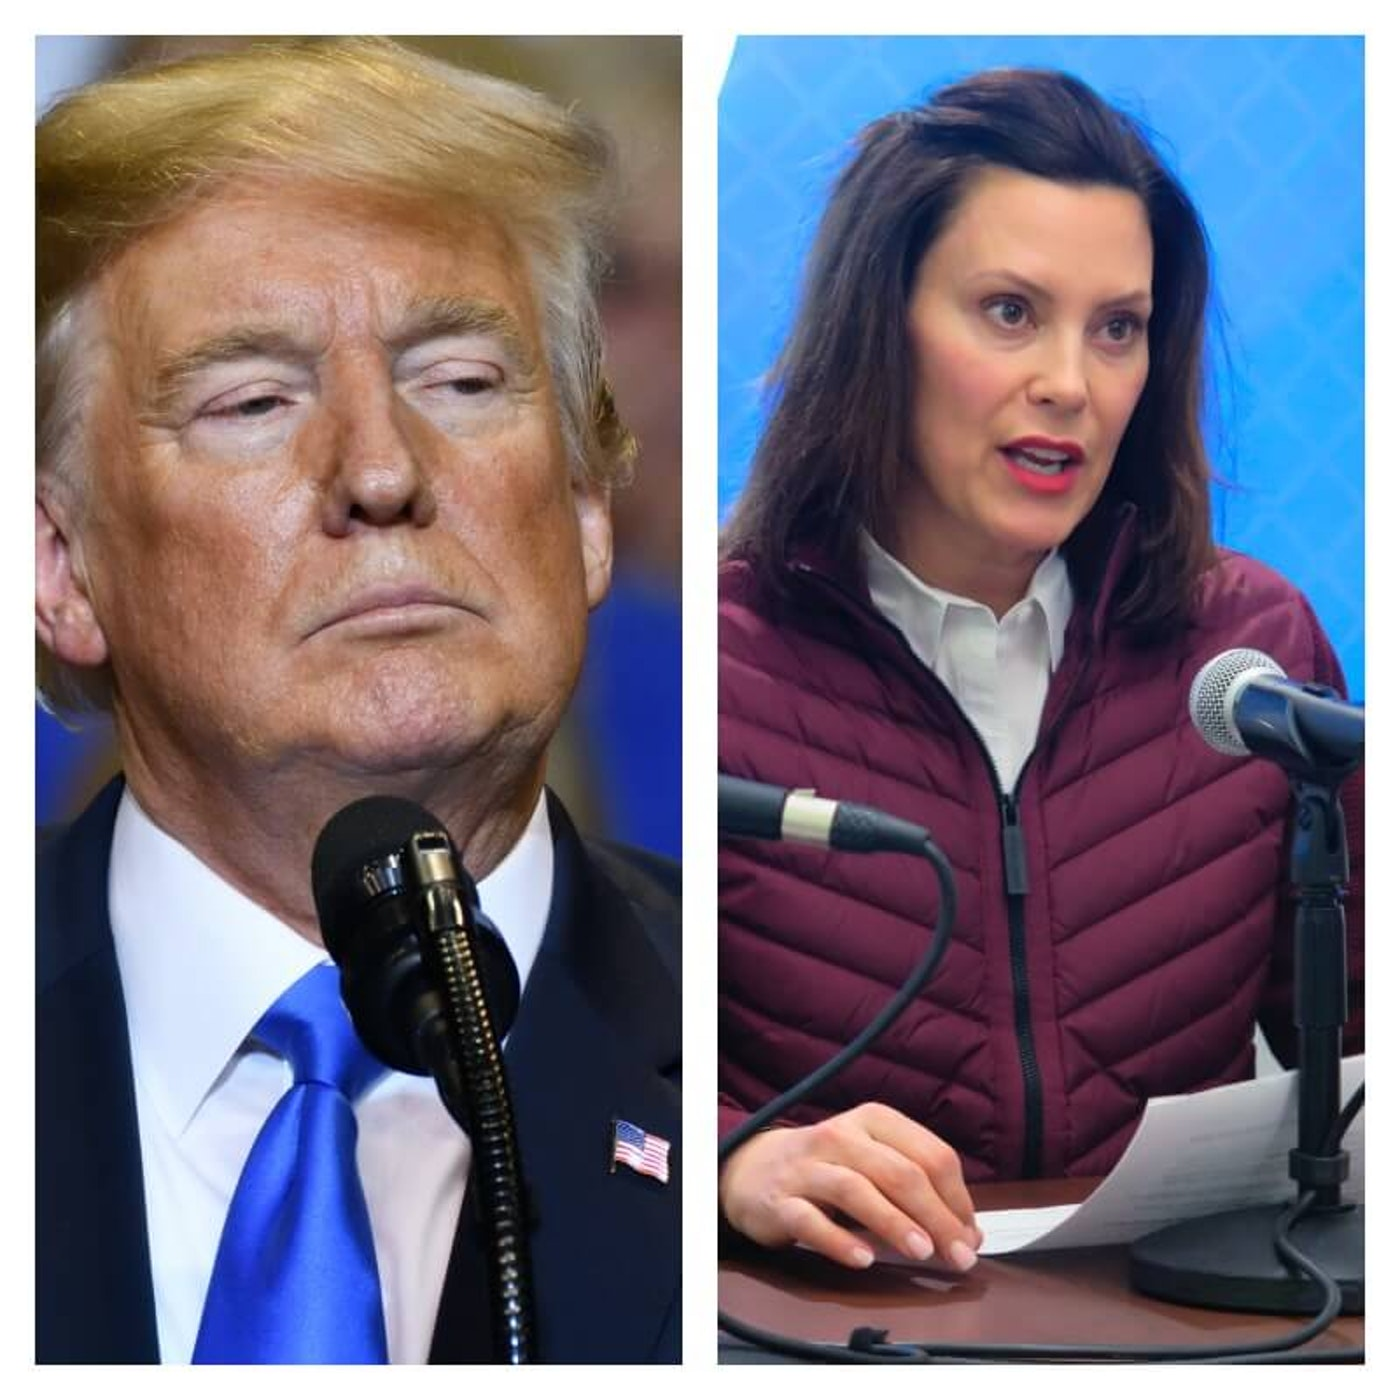 Trump photo via Shutterstock, Whitmer photo by AP Photo/David Eggert